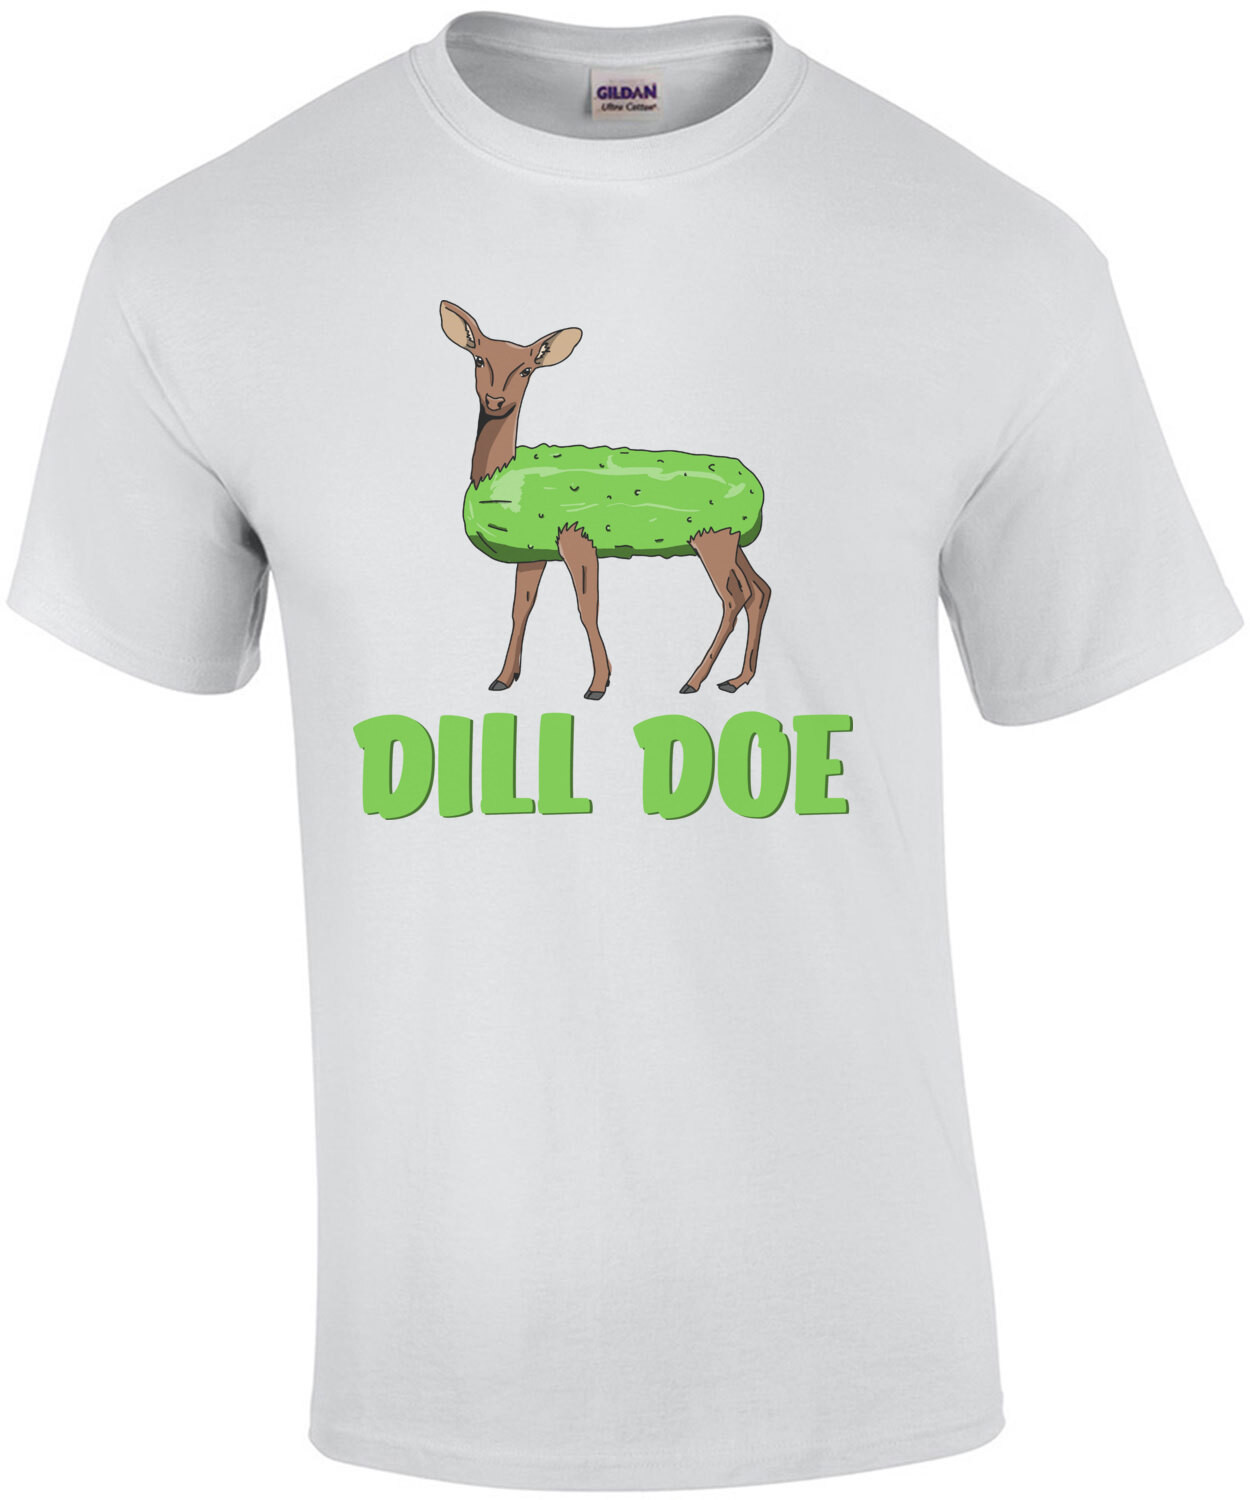 Dill Doe - Funny Sexual Offensive Pun T-Shirt